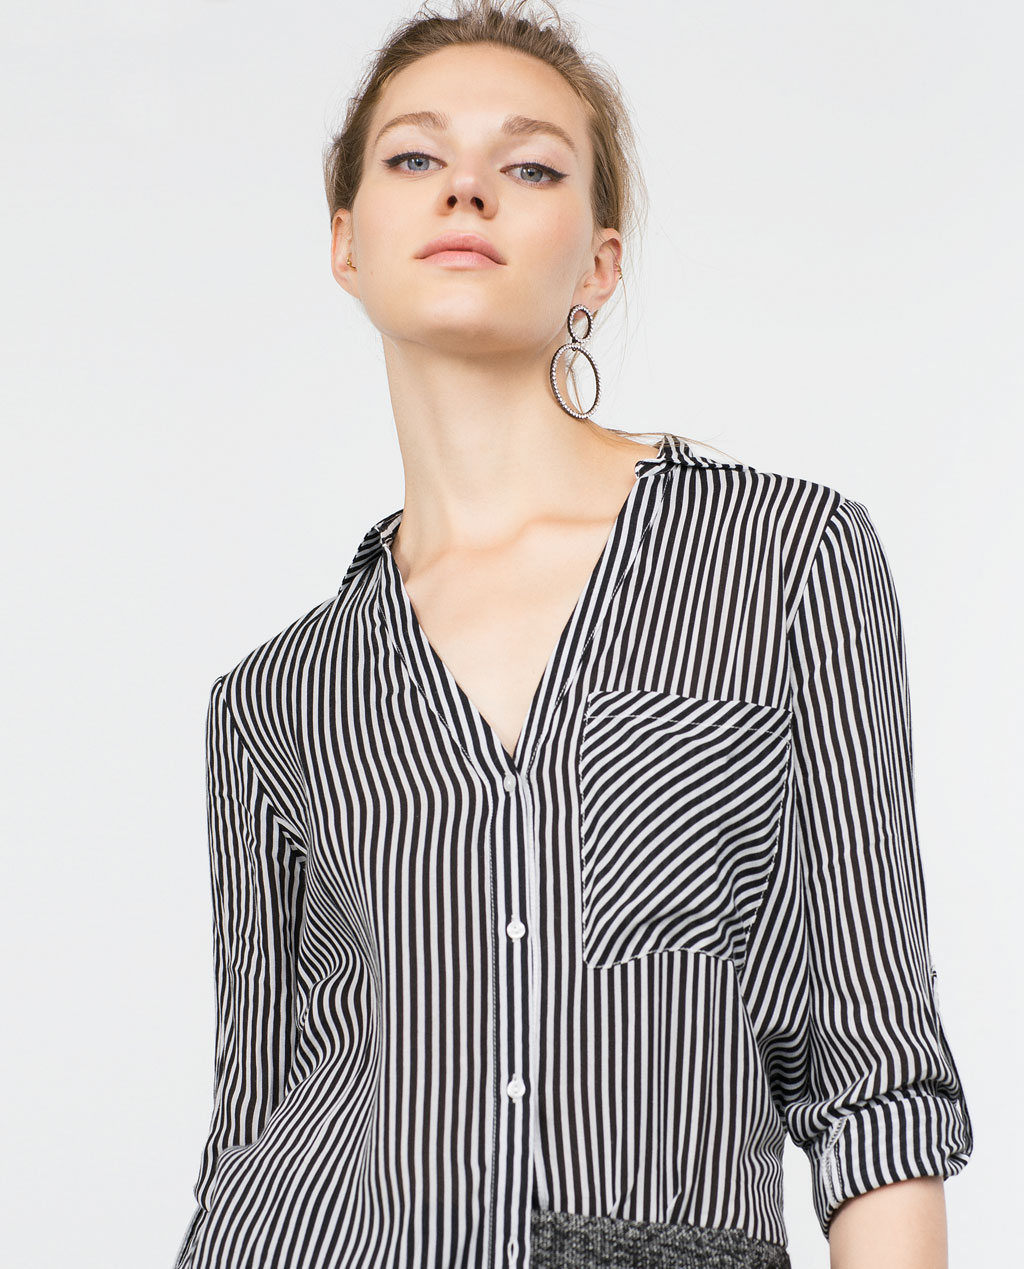 Zara Black and White Striped Blouse Review